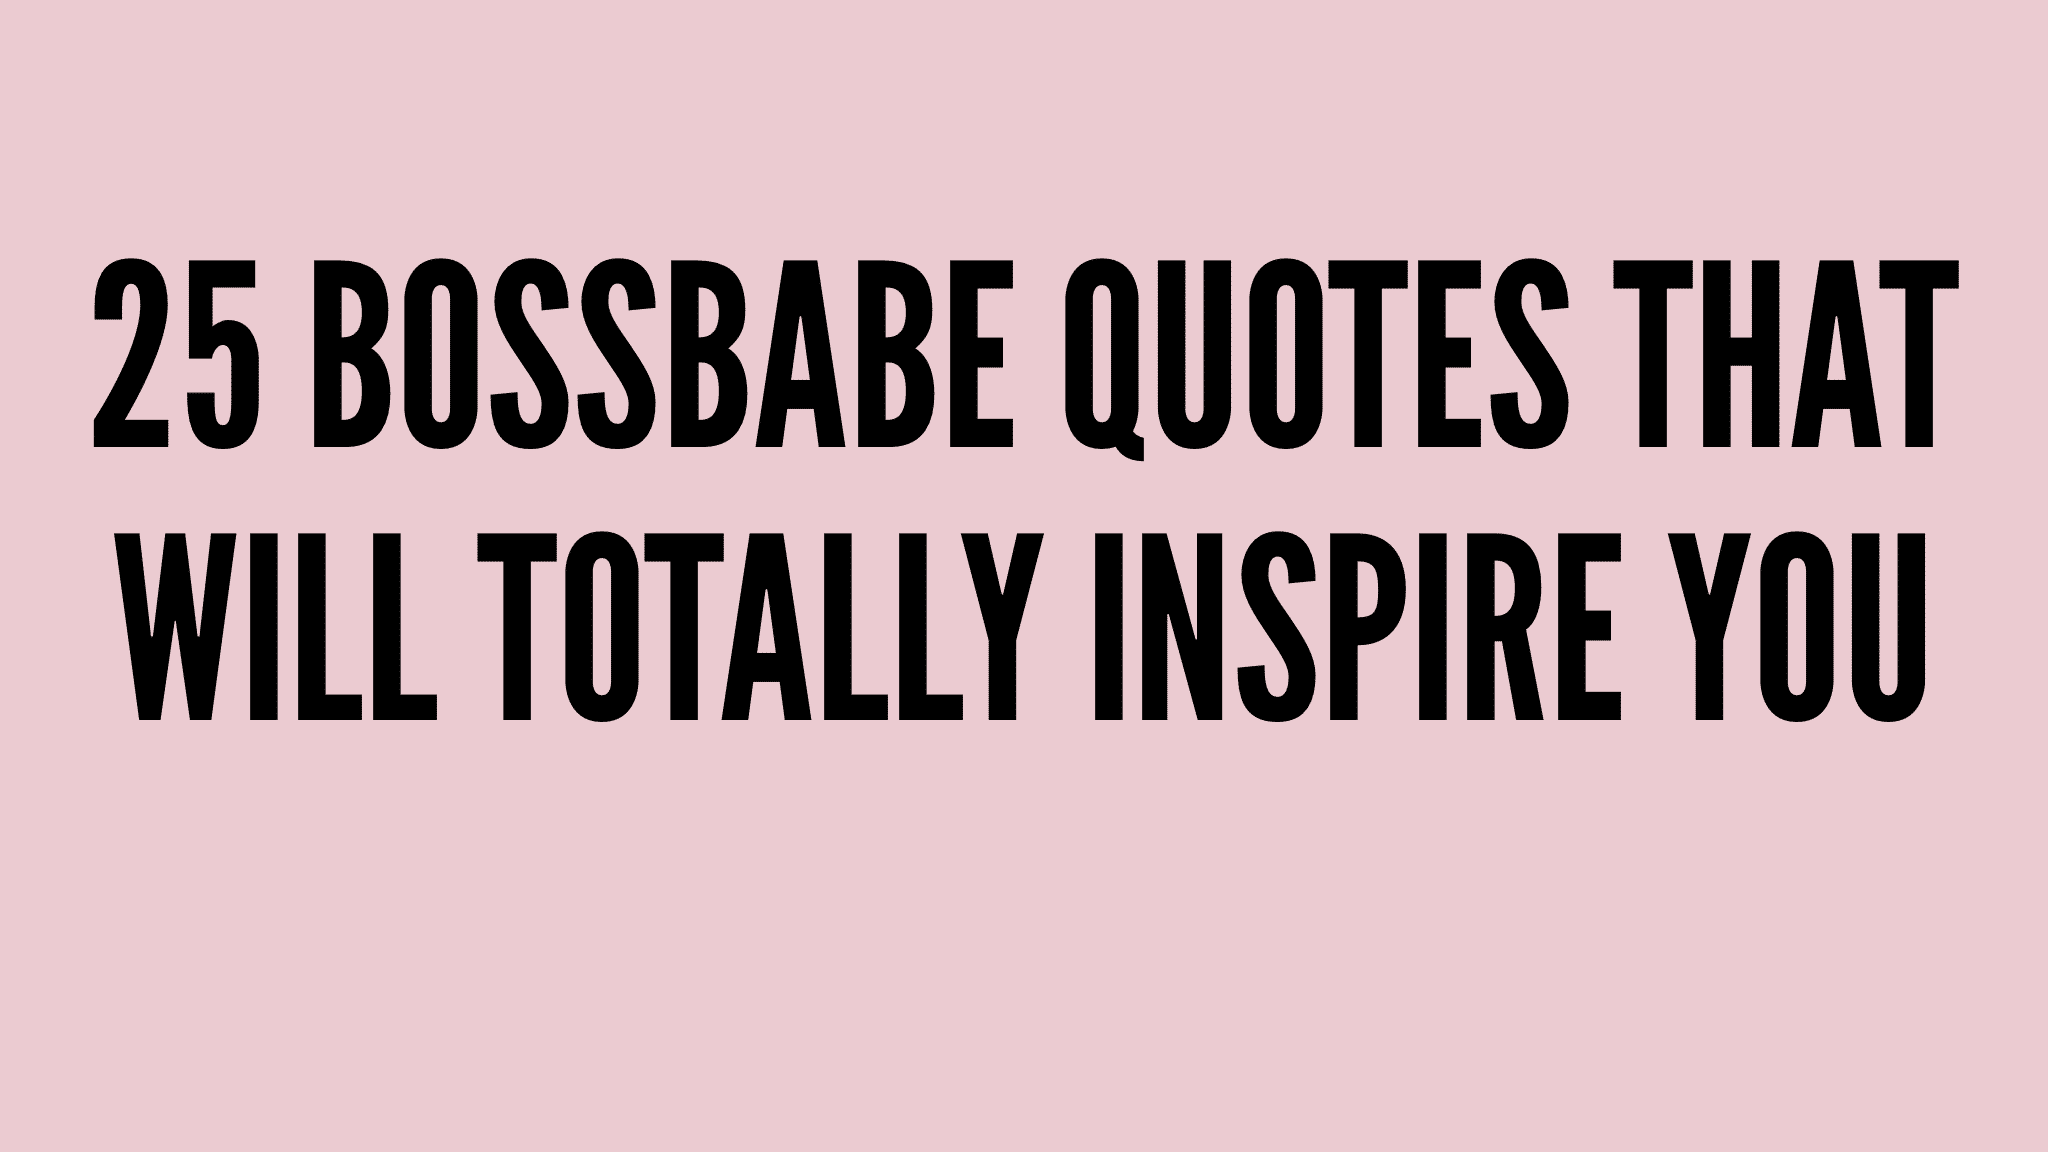 Bossbabe Quotes